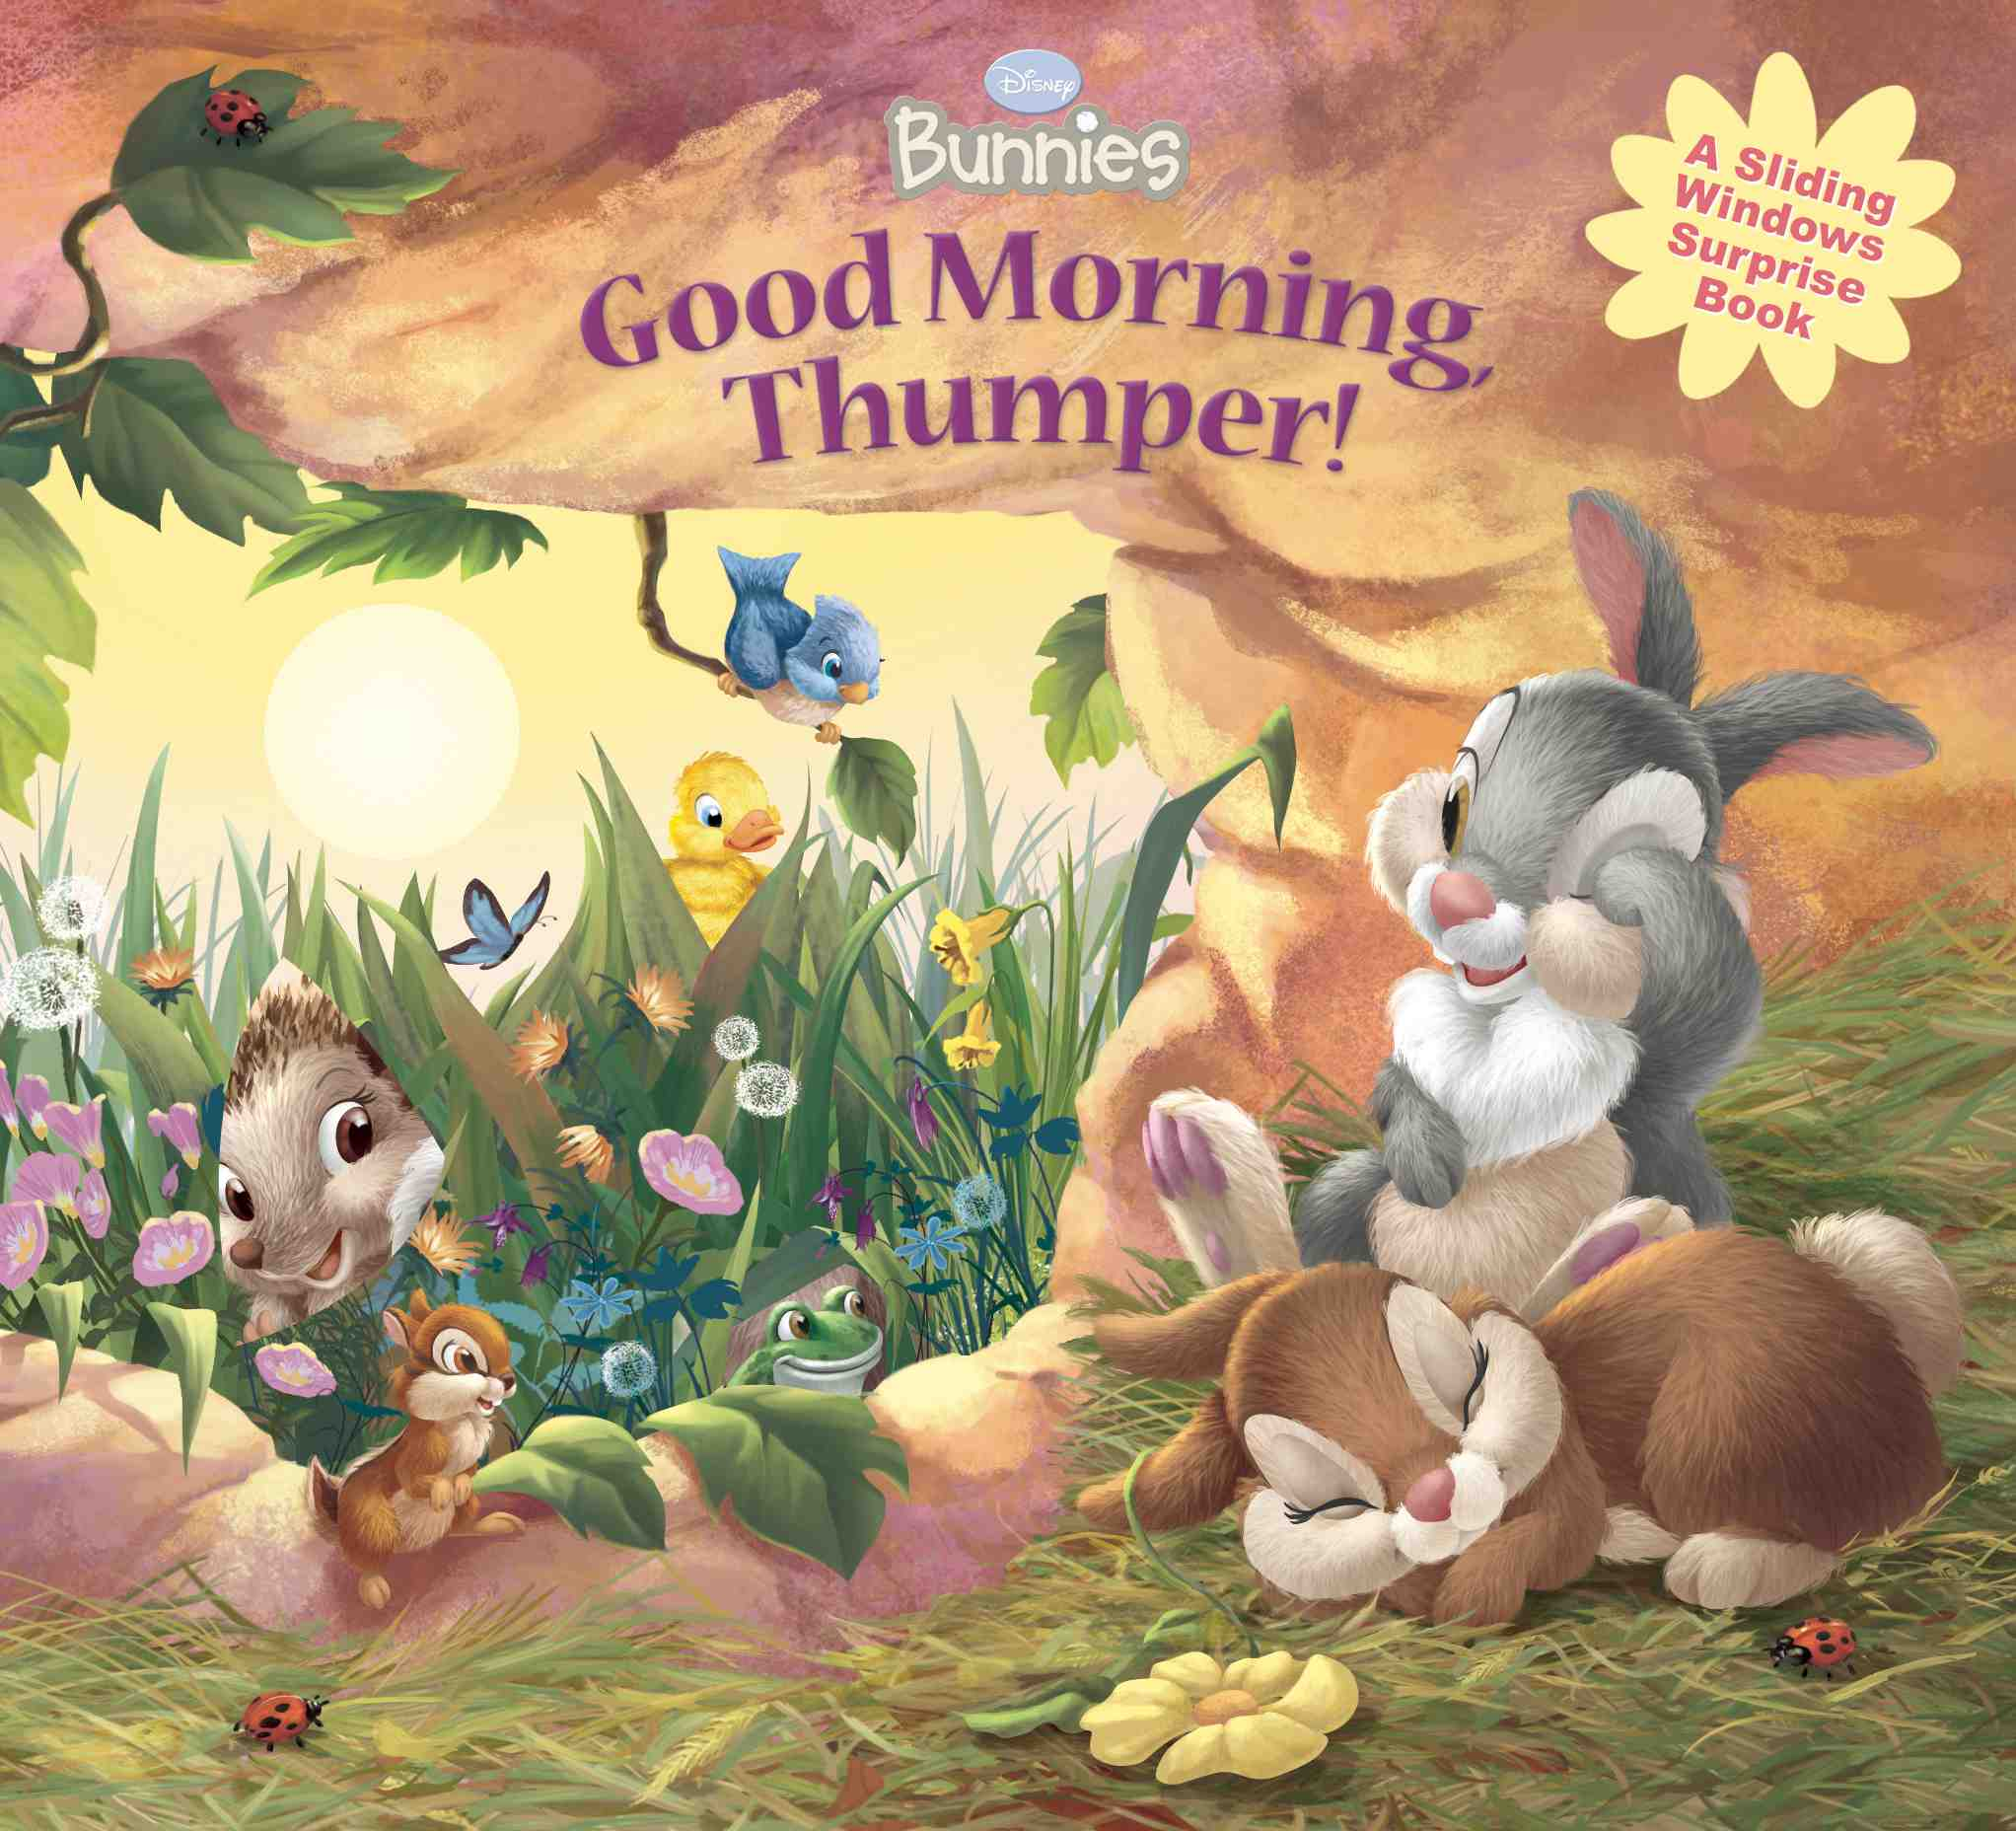 Thumper and the Noisy Ducky | Disney Publishing Worldwide